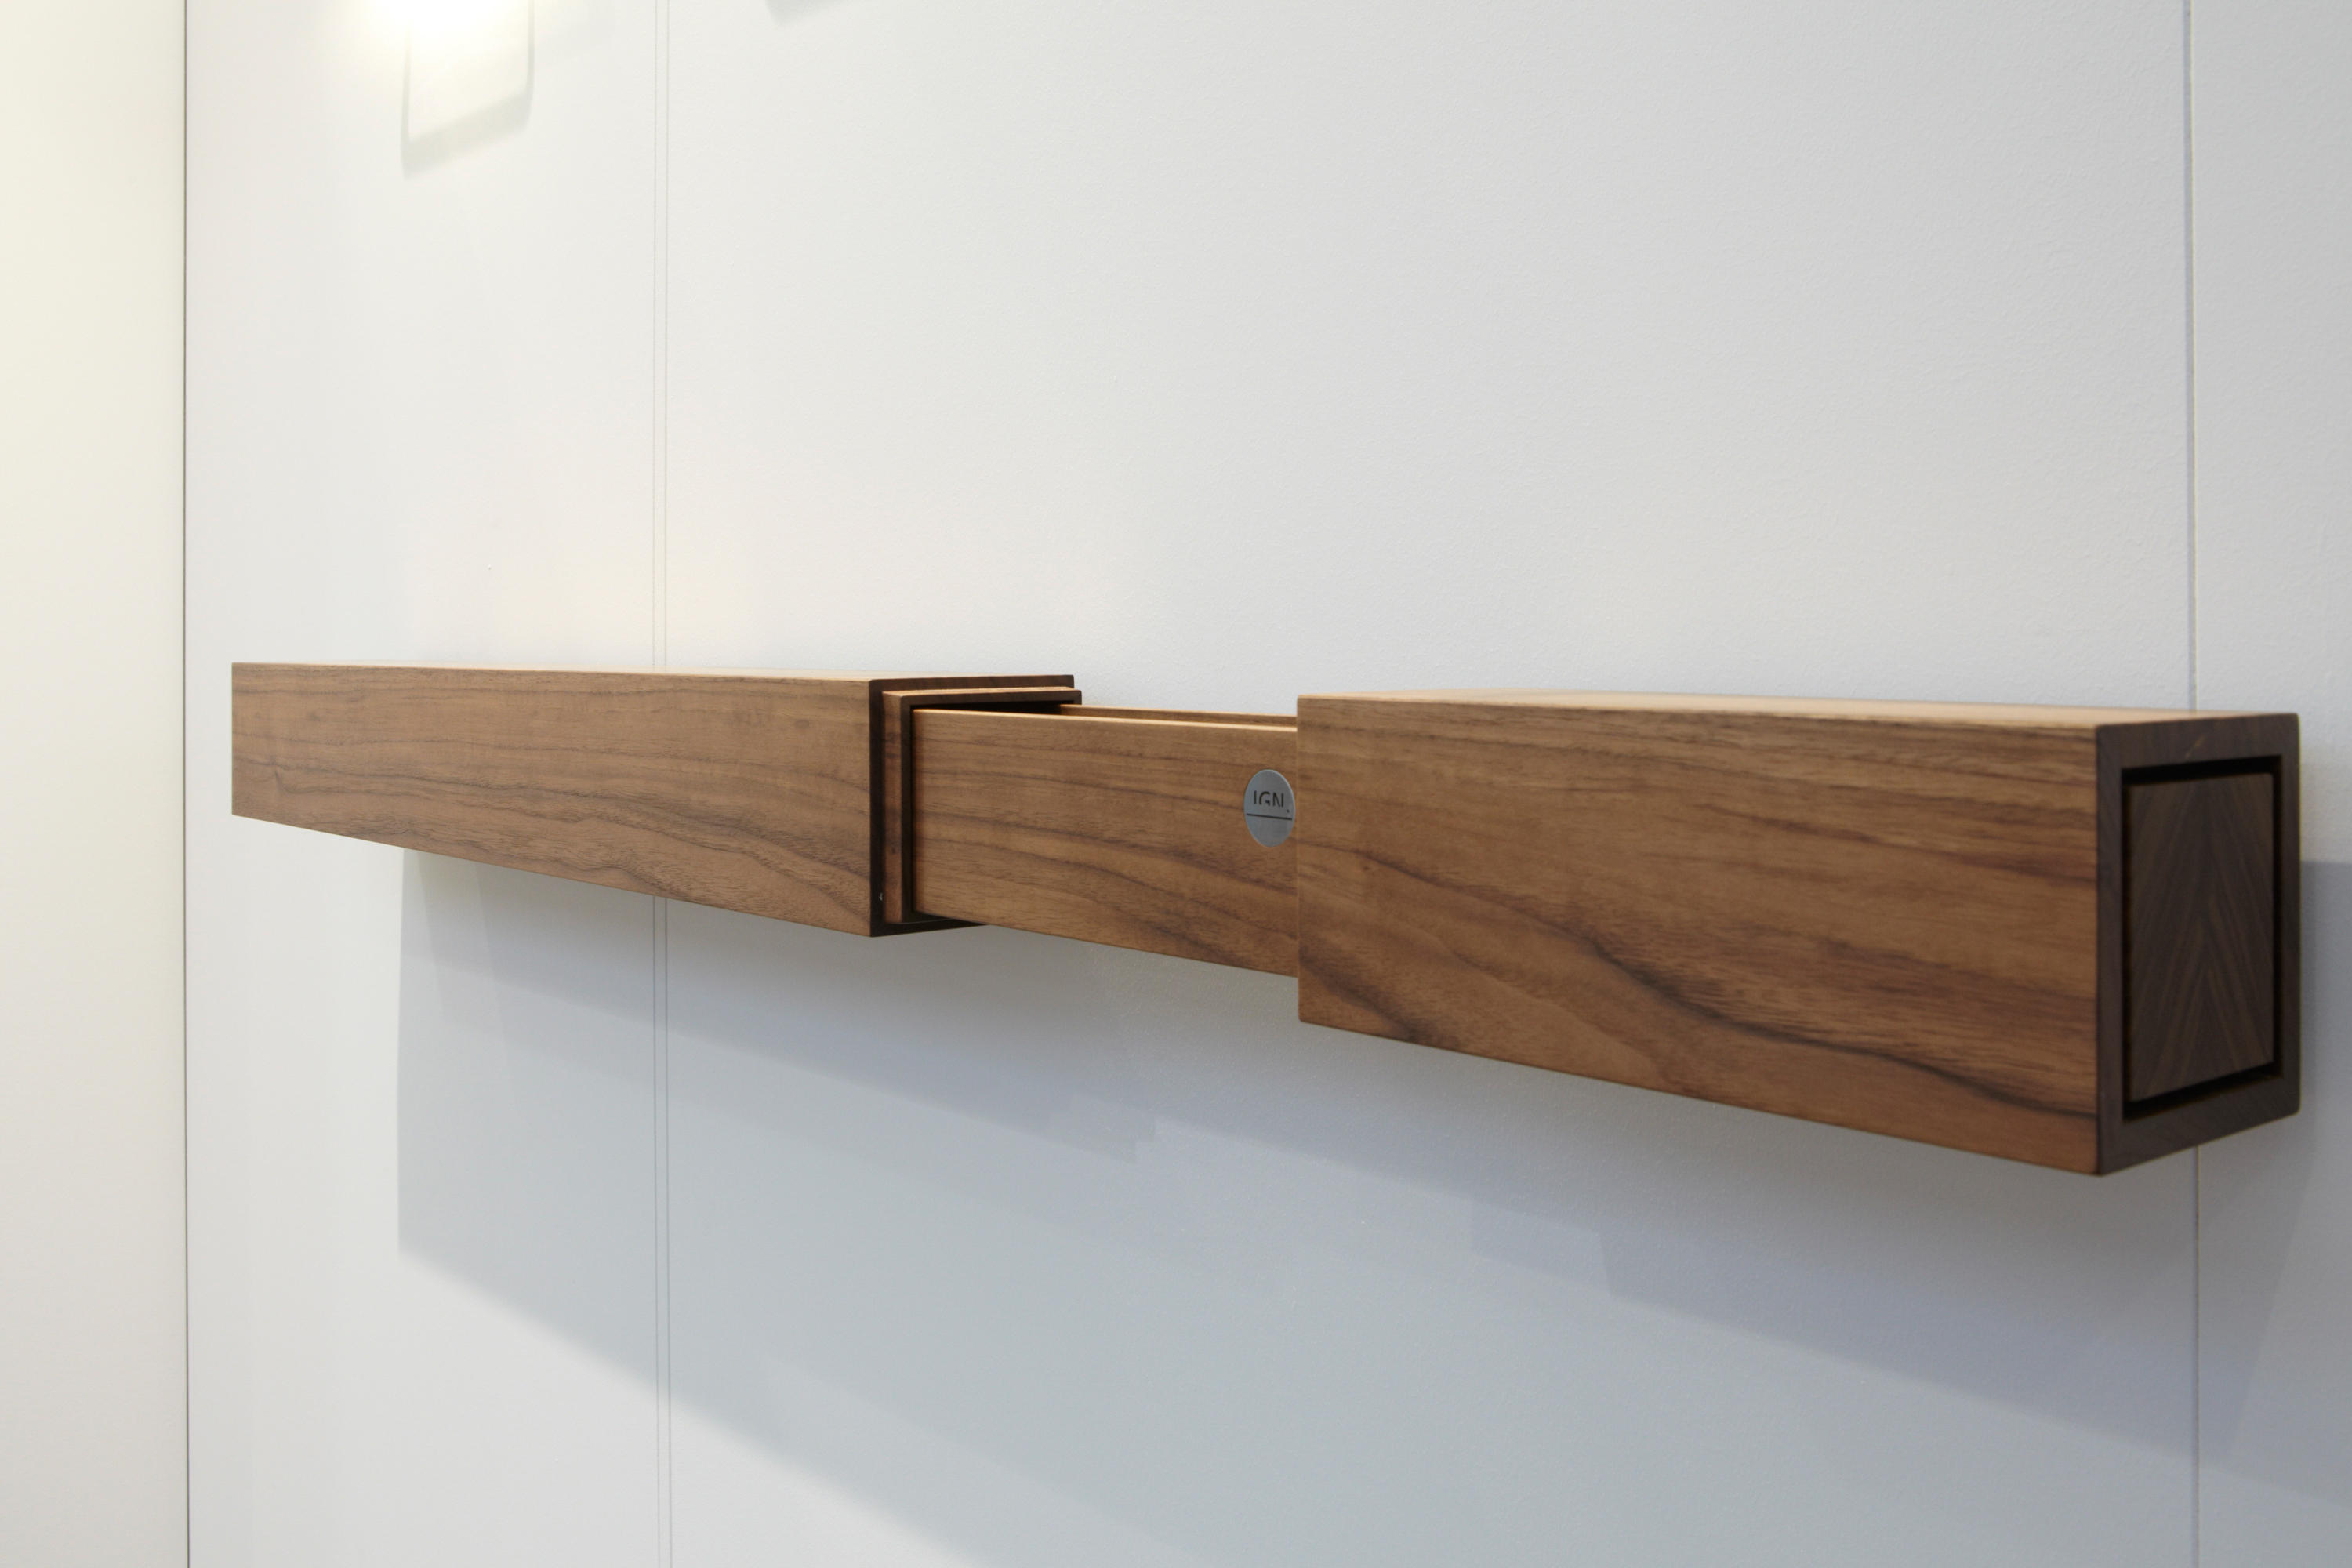 ign longbox wall shelves from ign design architonic